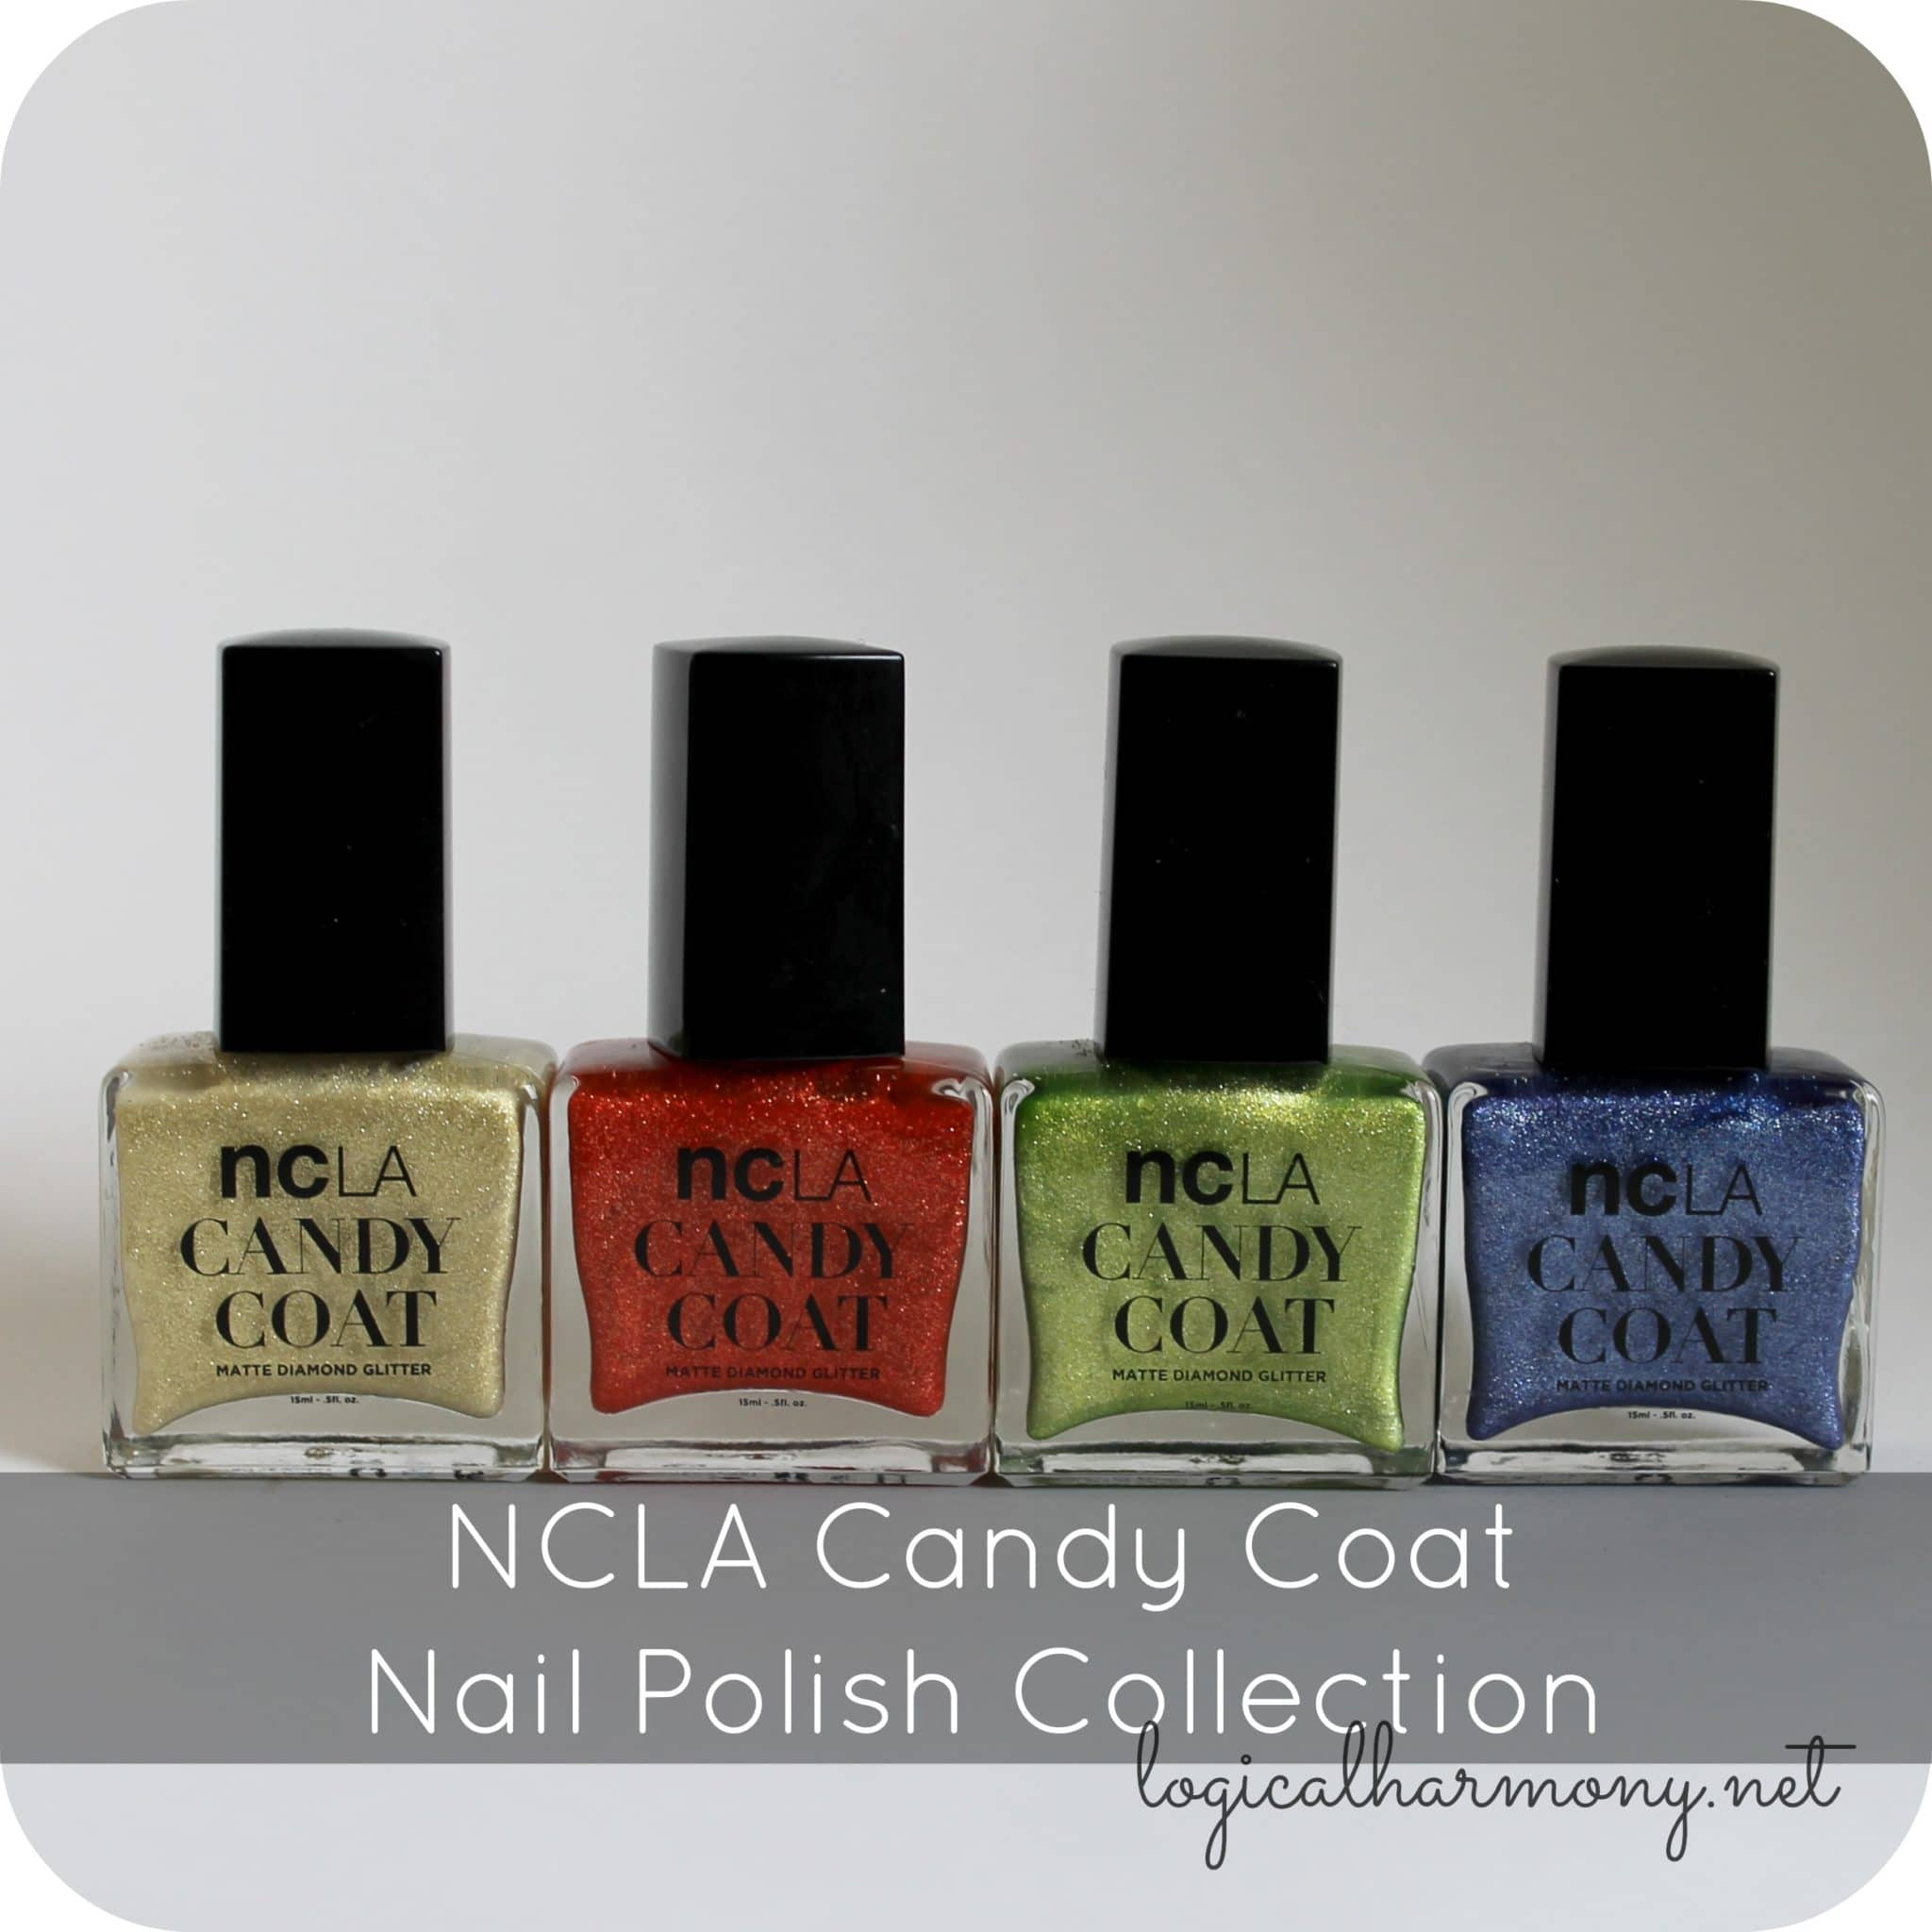 NCLA Candy Coat Nail Polish Collection